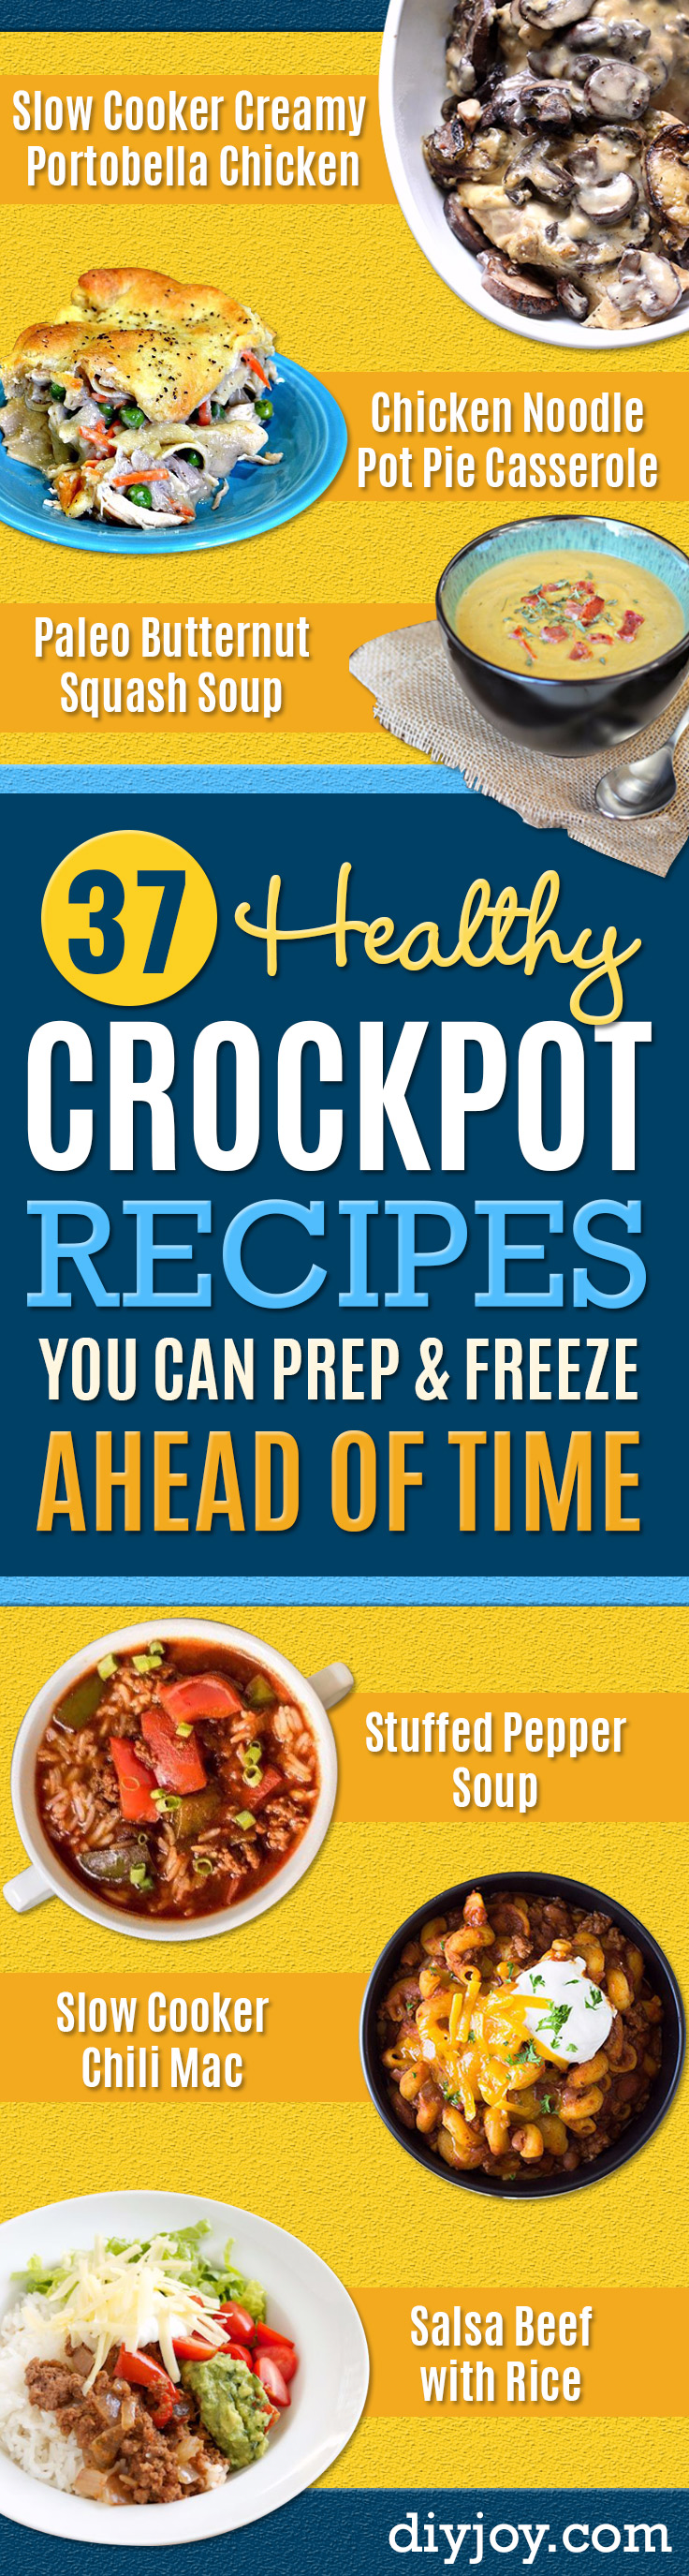 Healthy Crockpot Recipes to Make and Freeze Ahead - Easy and Quick Dinners, Soups, Sides You Make Put In The Freezer for Simple Last Minute Cooking - Low Fat Chicken, Veggies, Stews, Vegetable Sides and Beef Meals for Your Slow Cooker and Crock Pot http://diyjoy.com/healthy-crockpot-recipes